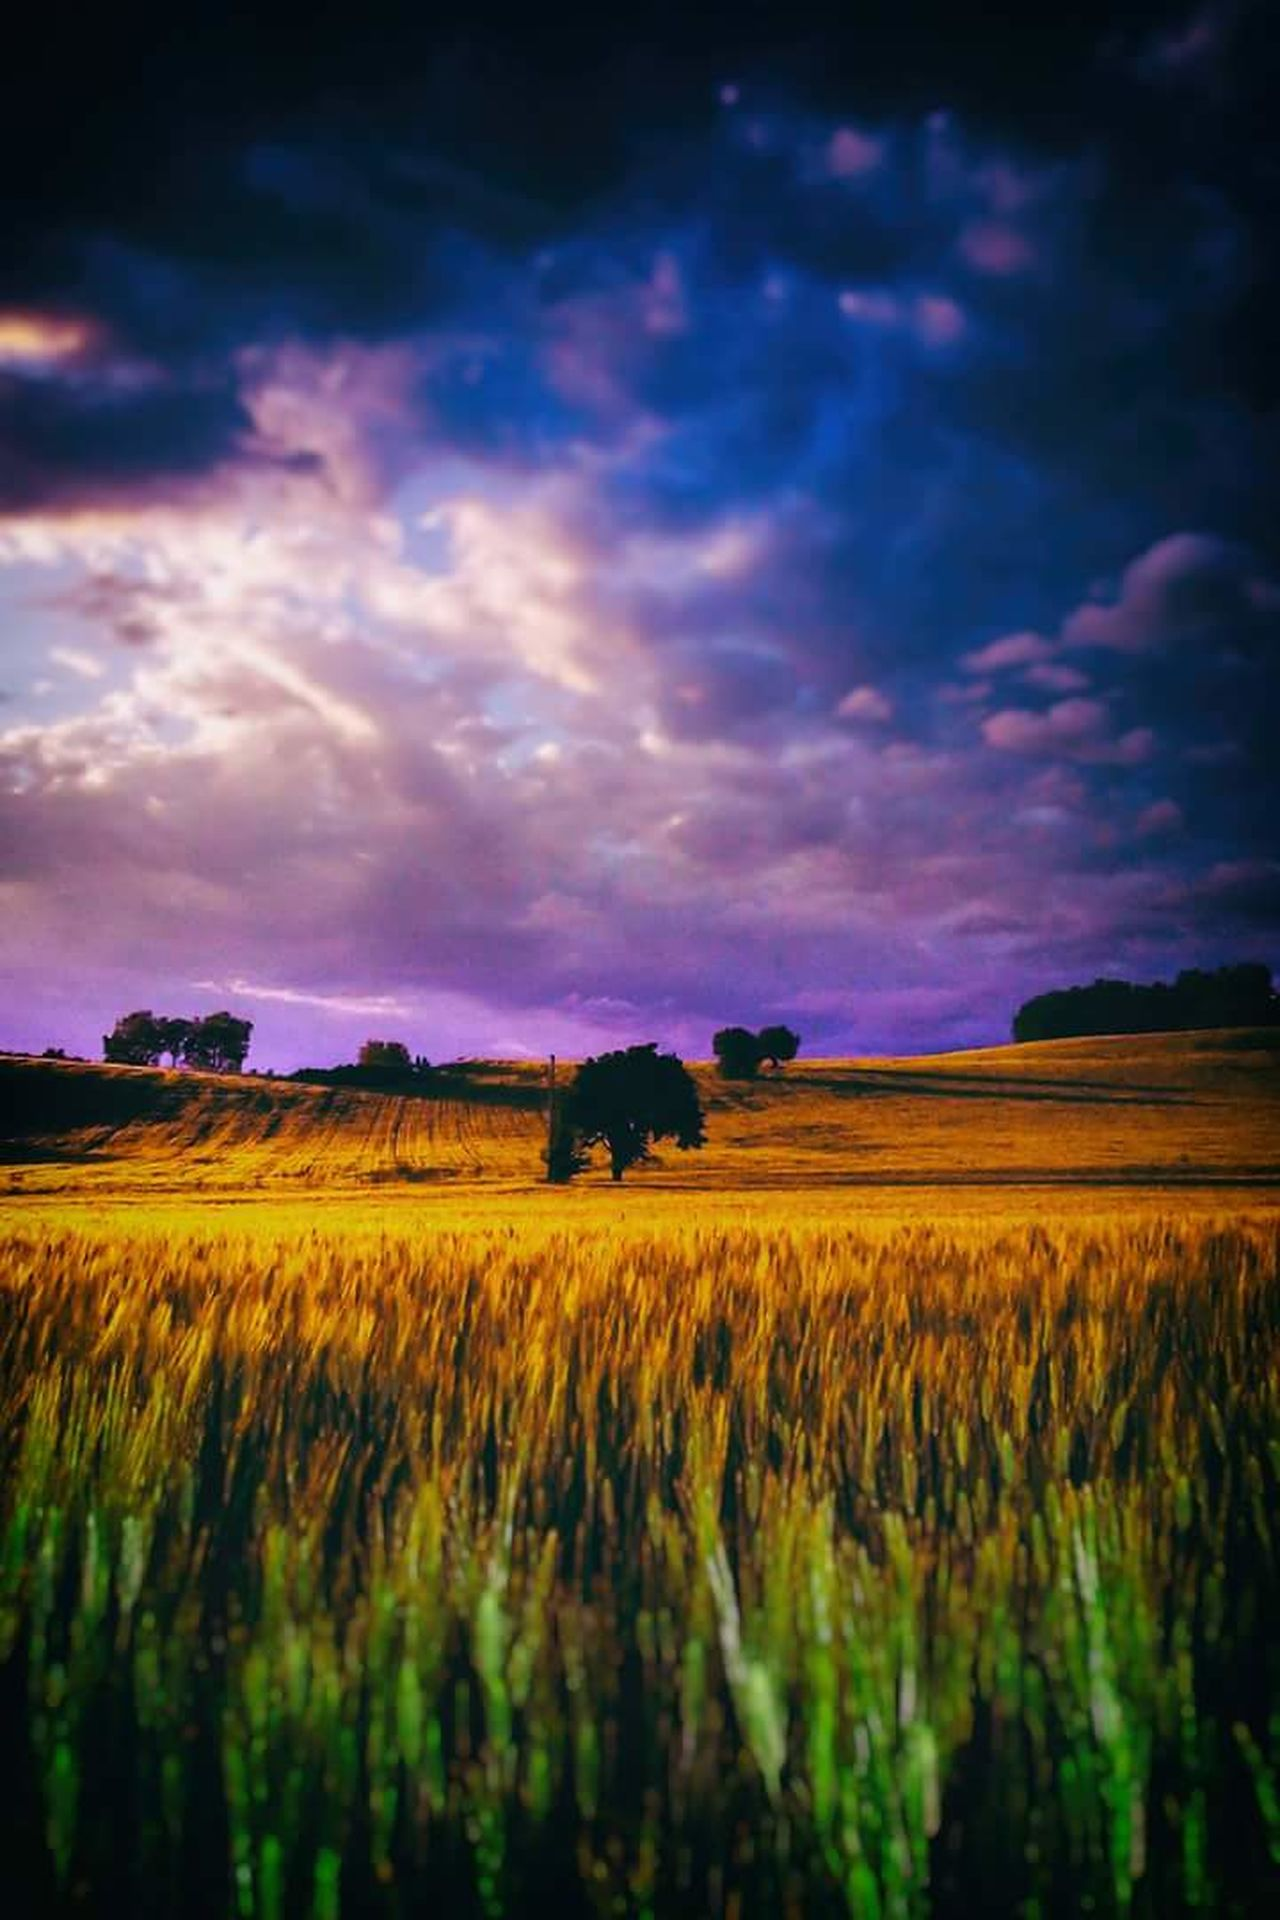 Dorothy was Here Field Dramatic Sky Sunset Tranquility Landscape Rural Scene Cloud - Sky Nature Outdoors No People Scenics Multi Colored Stormy Weather Stormclouds Photographylovers Day Nature Emotional Photography Photomania Eyemphotography Beauty In Nature Photomanipulation Emotions Captured EyeEm Best Shots Emotion In Life